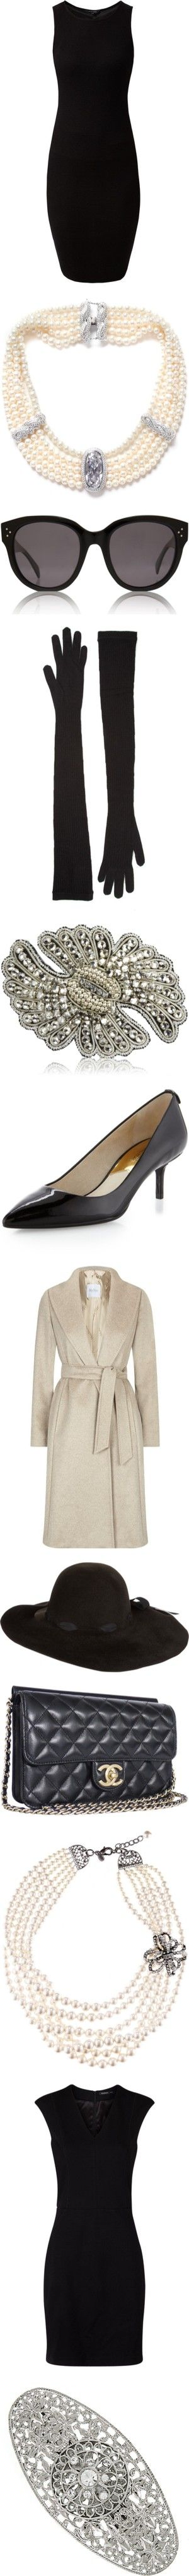 """Last Minute Costume: Audrey Hepburn, Breakfast at Tiffany's"" by polyvore-editorial ❤ liked on Polyvore"